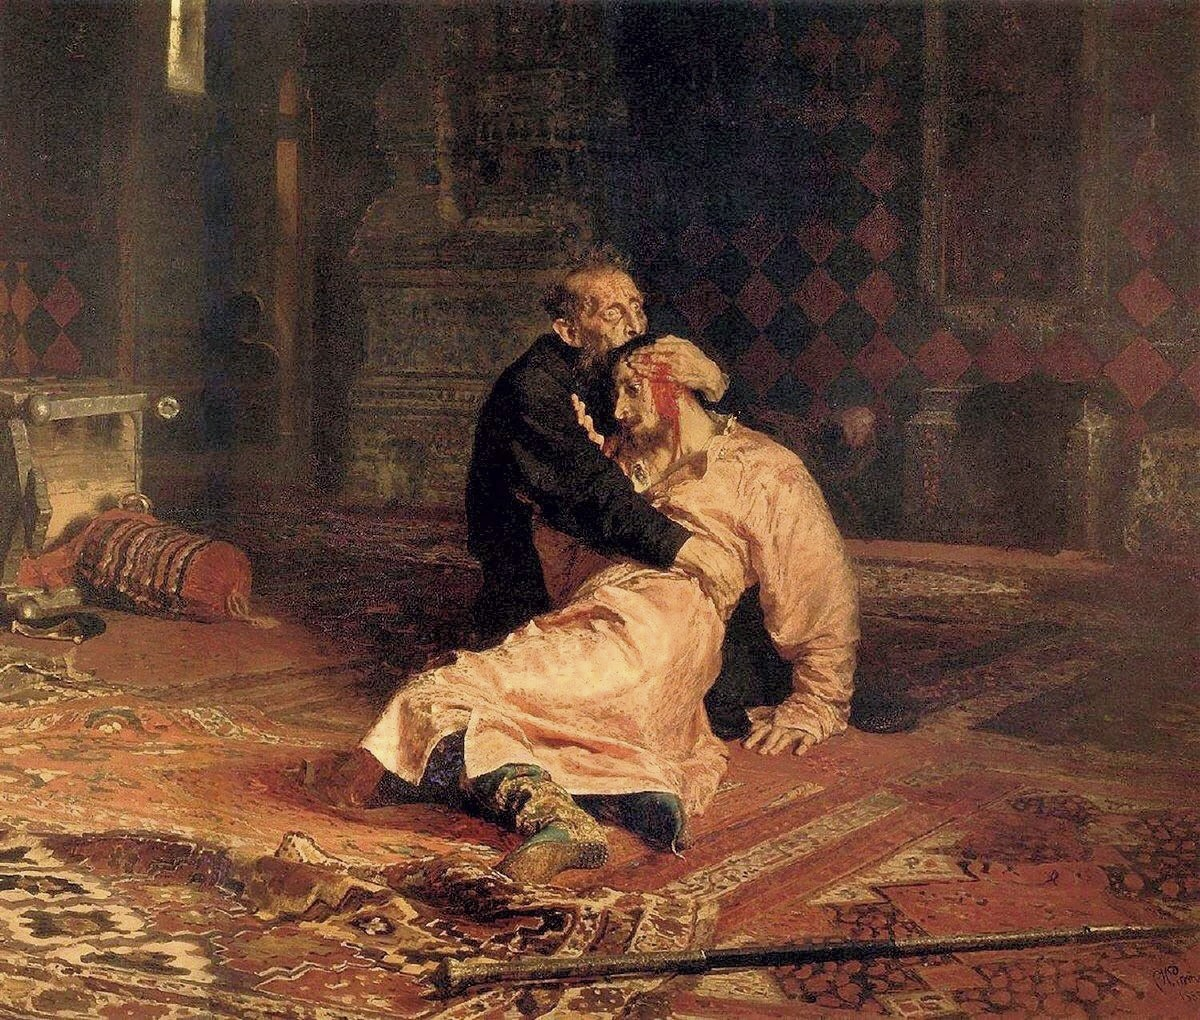 Ilya Repin. Tsar Ivan Grozny Killing His Son on 15 November 1581. 1873